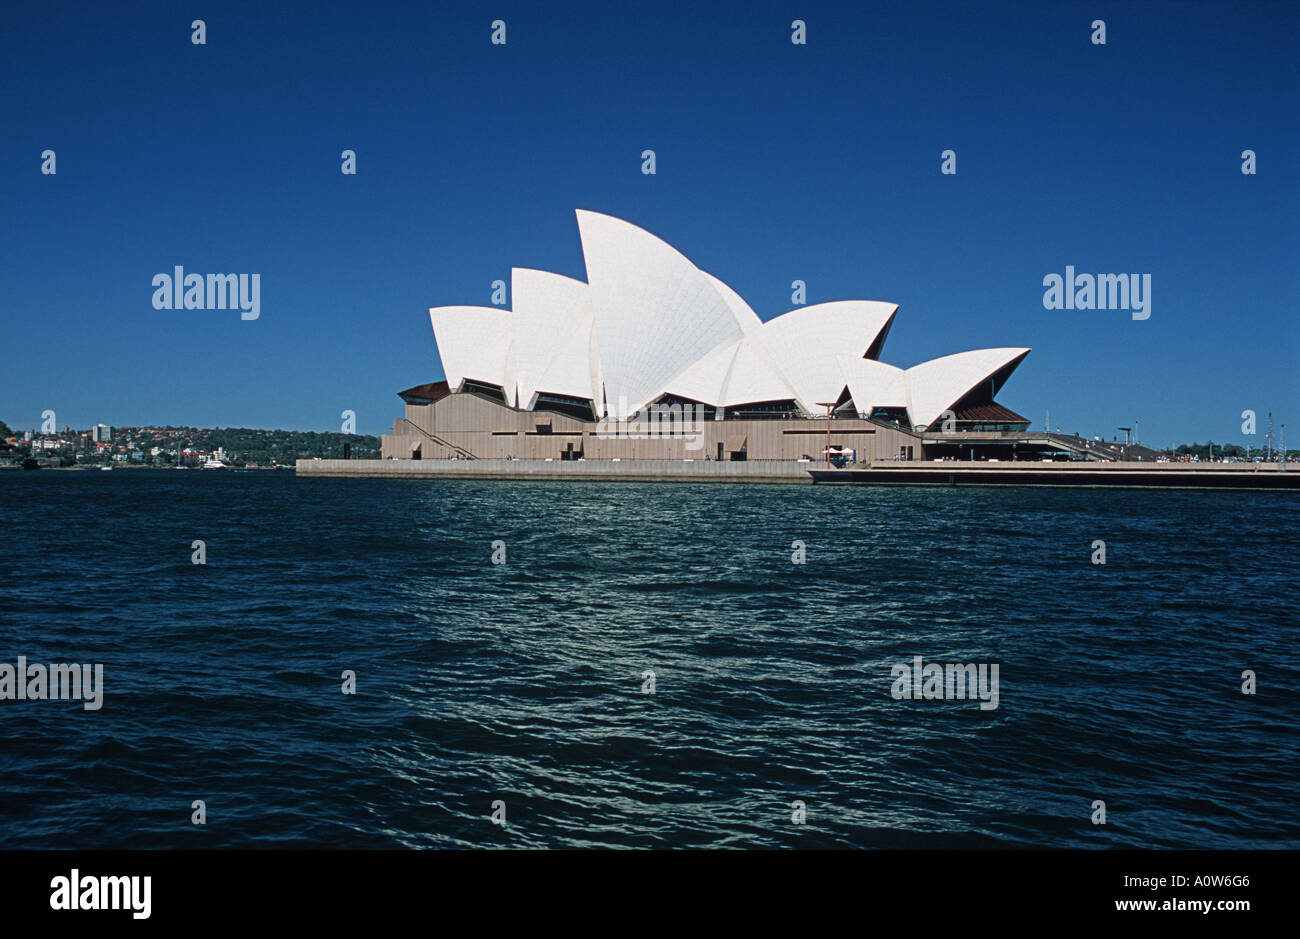 View of the famous Sydney Opera House Sydney Harbour Sydney New South Wales Australia - Stock Image